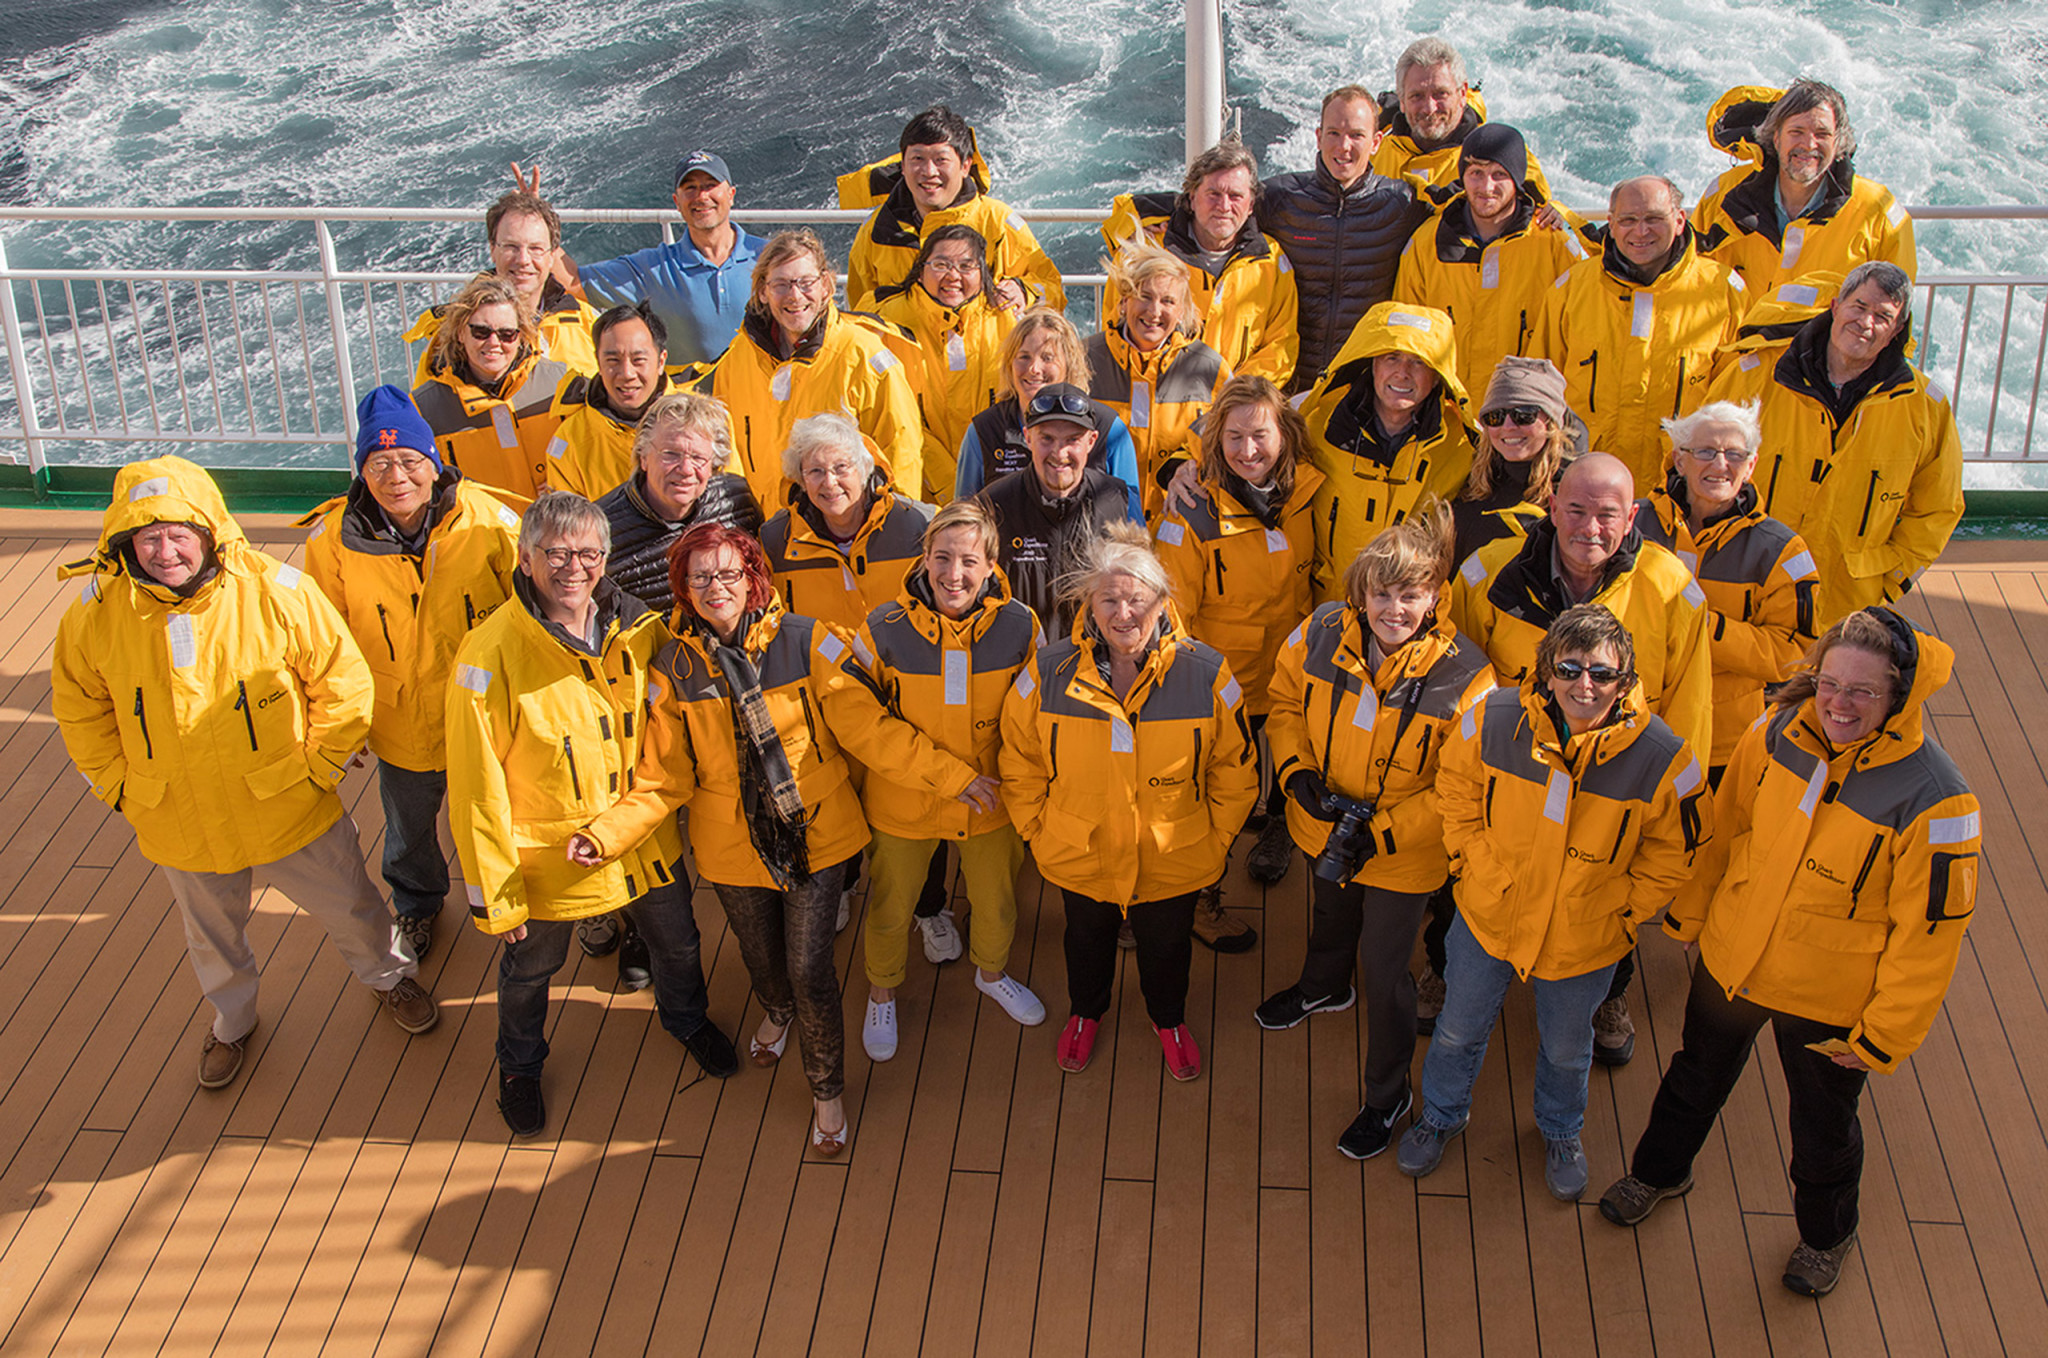 Participants in Antarctic Photography Workshop 2016